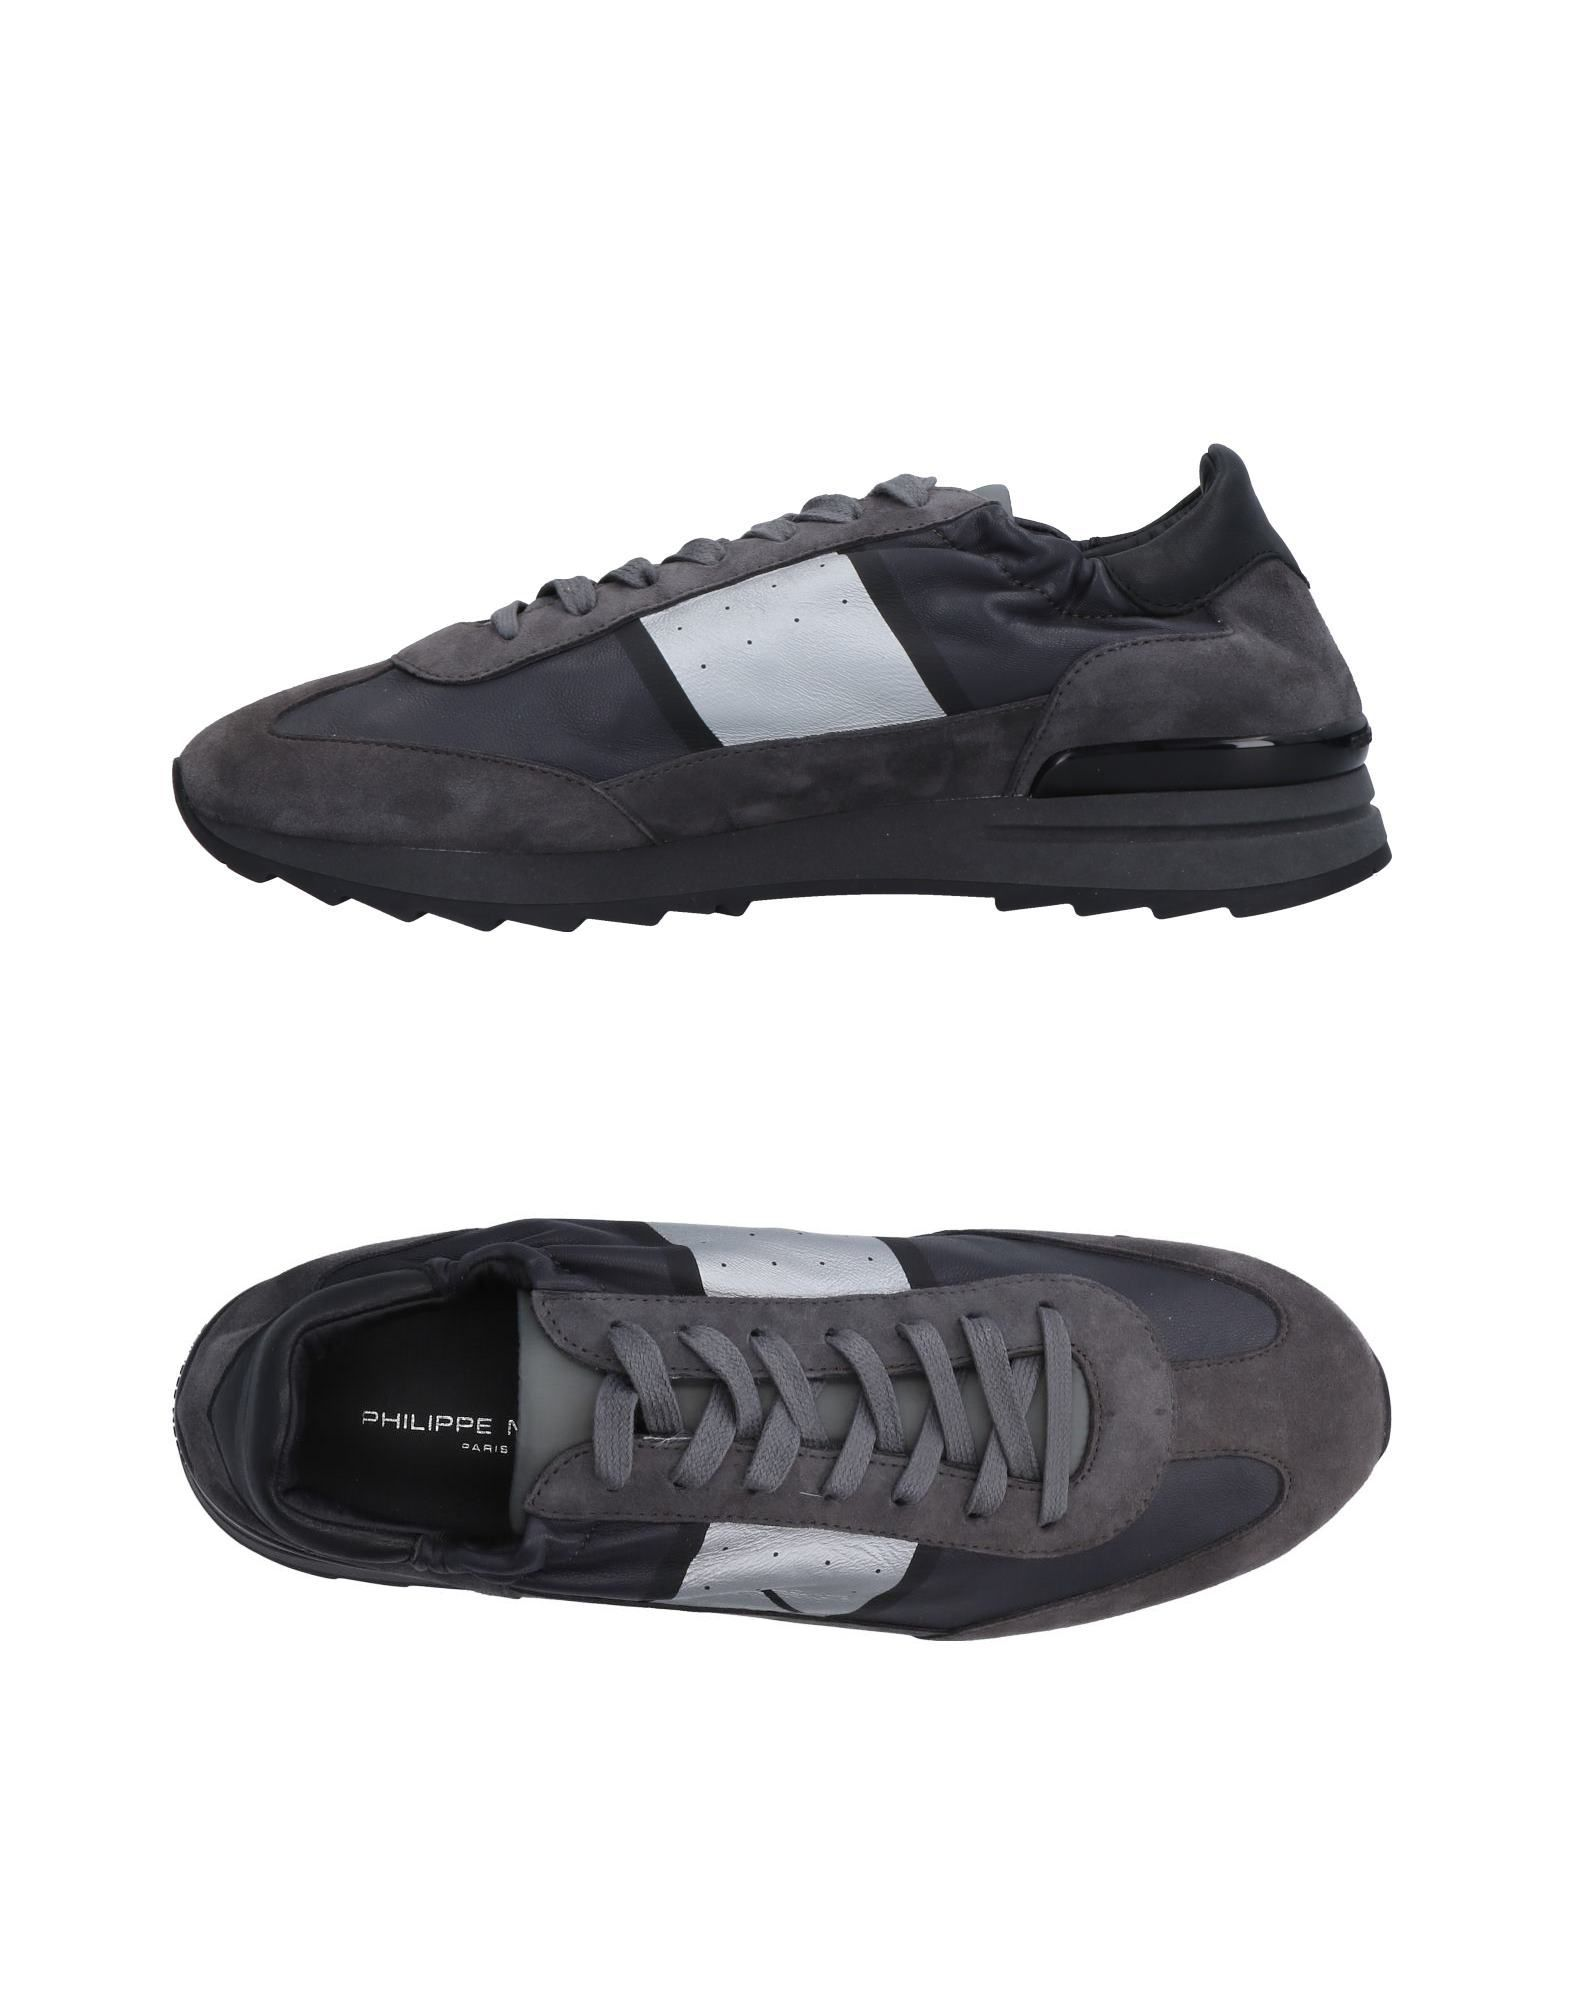 Sneakers Philippe Model Uomo - 11512589UF